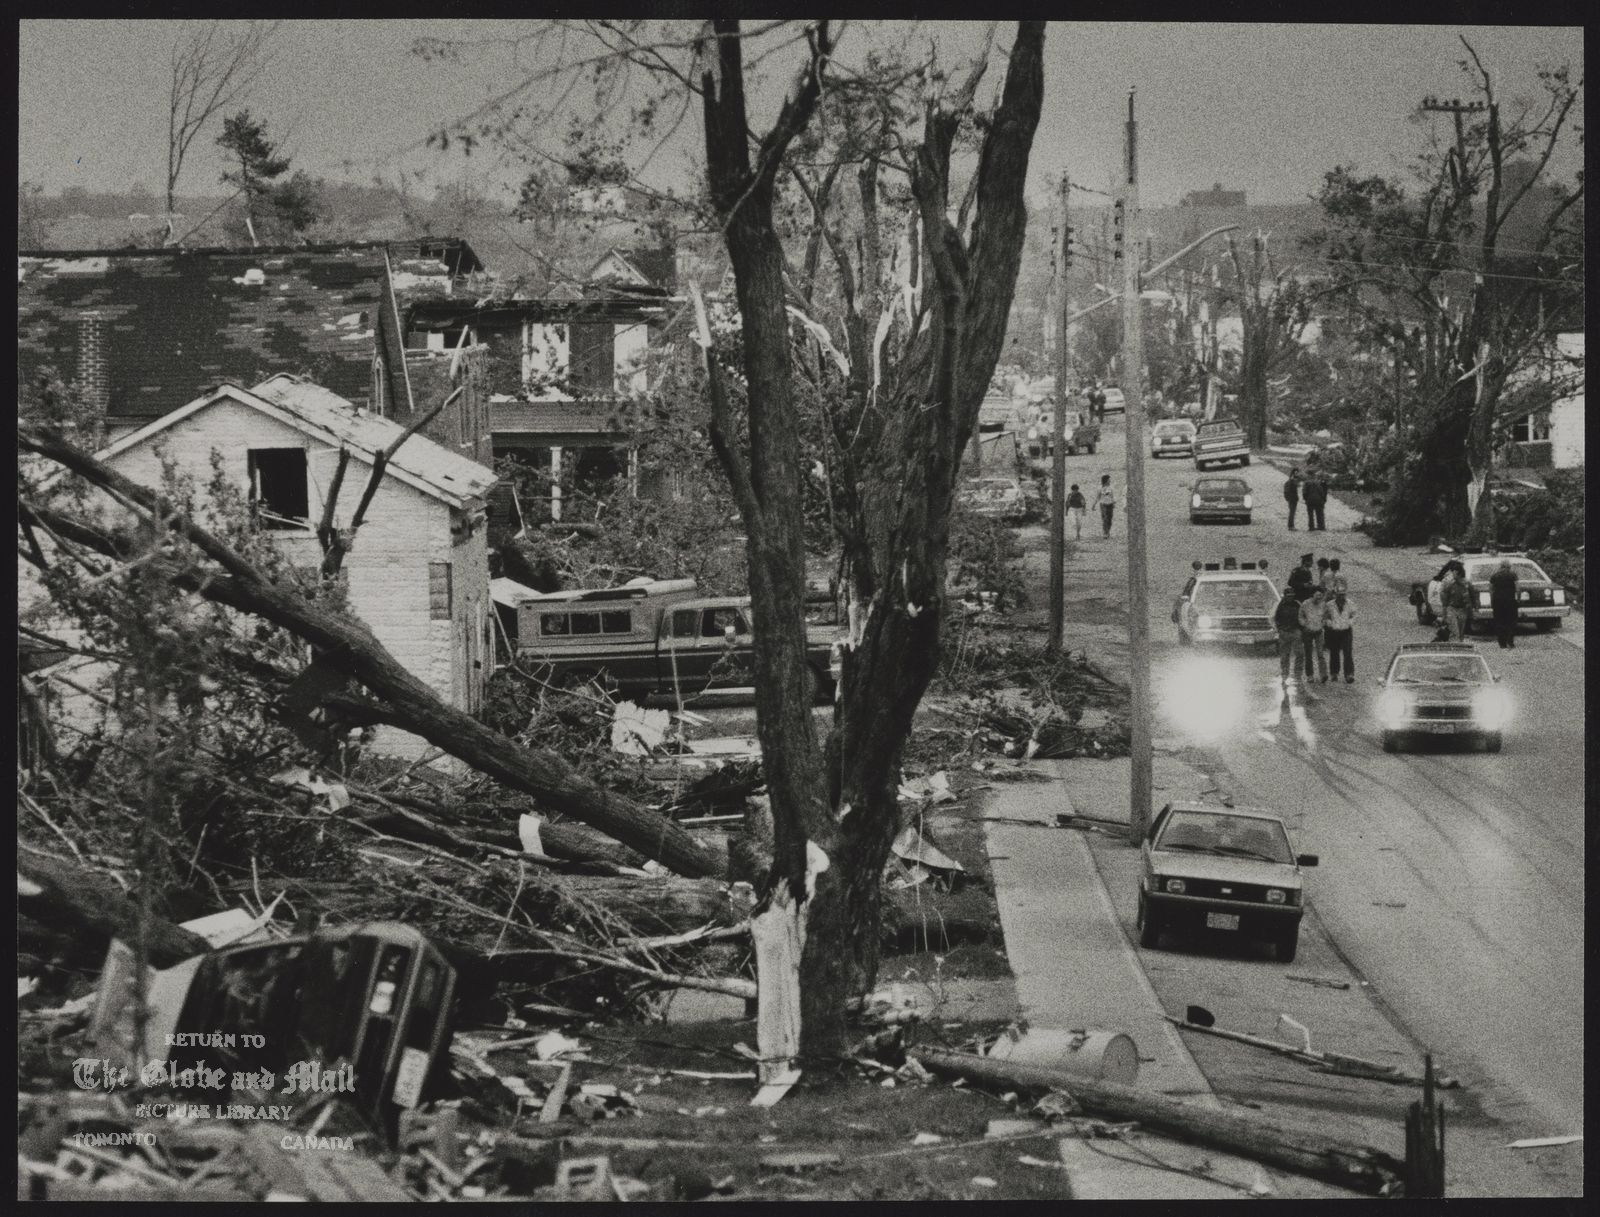 The notes transcribed from the back of this photograph are as follows: The fierce storm left houses and trees on Amaranth Street in Grand Valley in shreds.